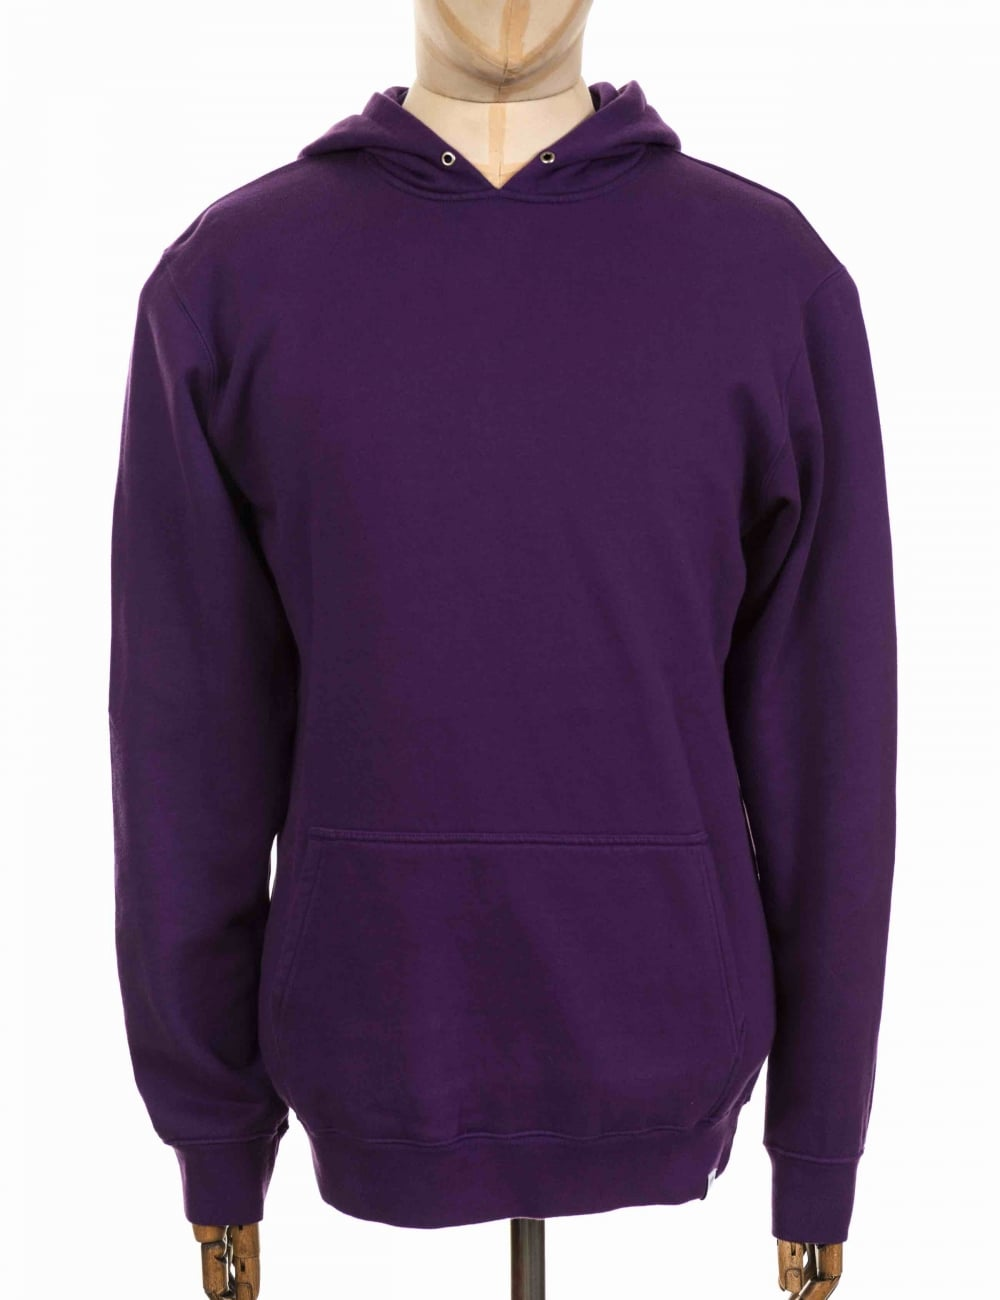 Edwin Jeans Felpa Hooded Sweatshirt - Purple - Clothing from Fat ... 1b0f8d3e3f2c